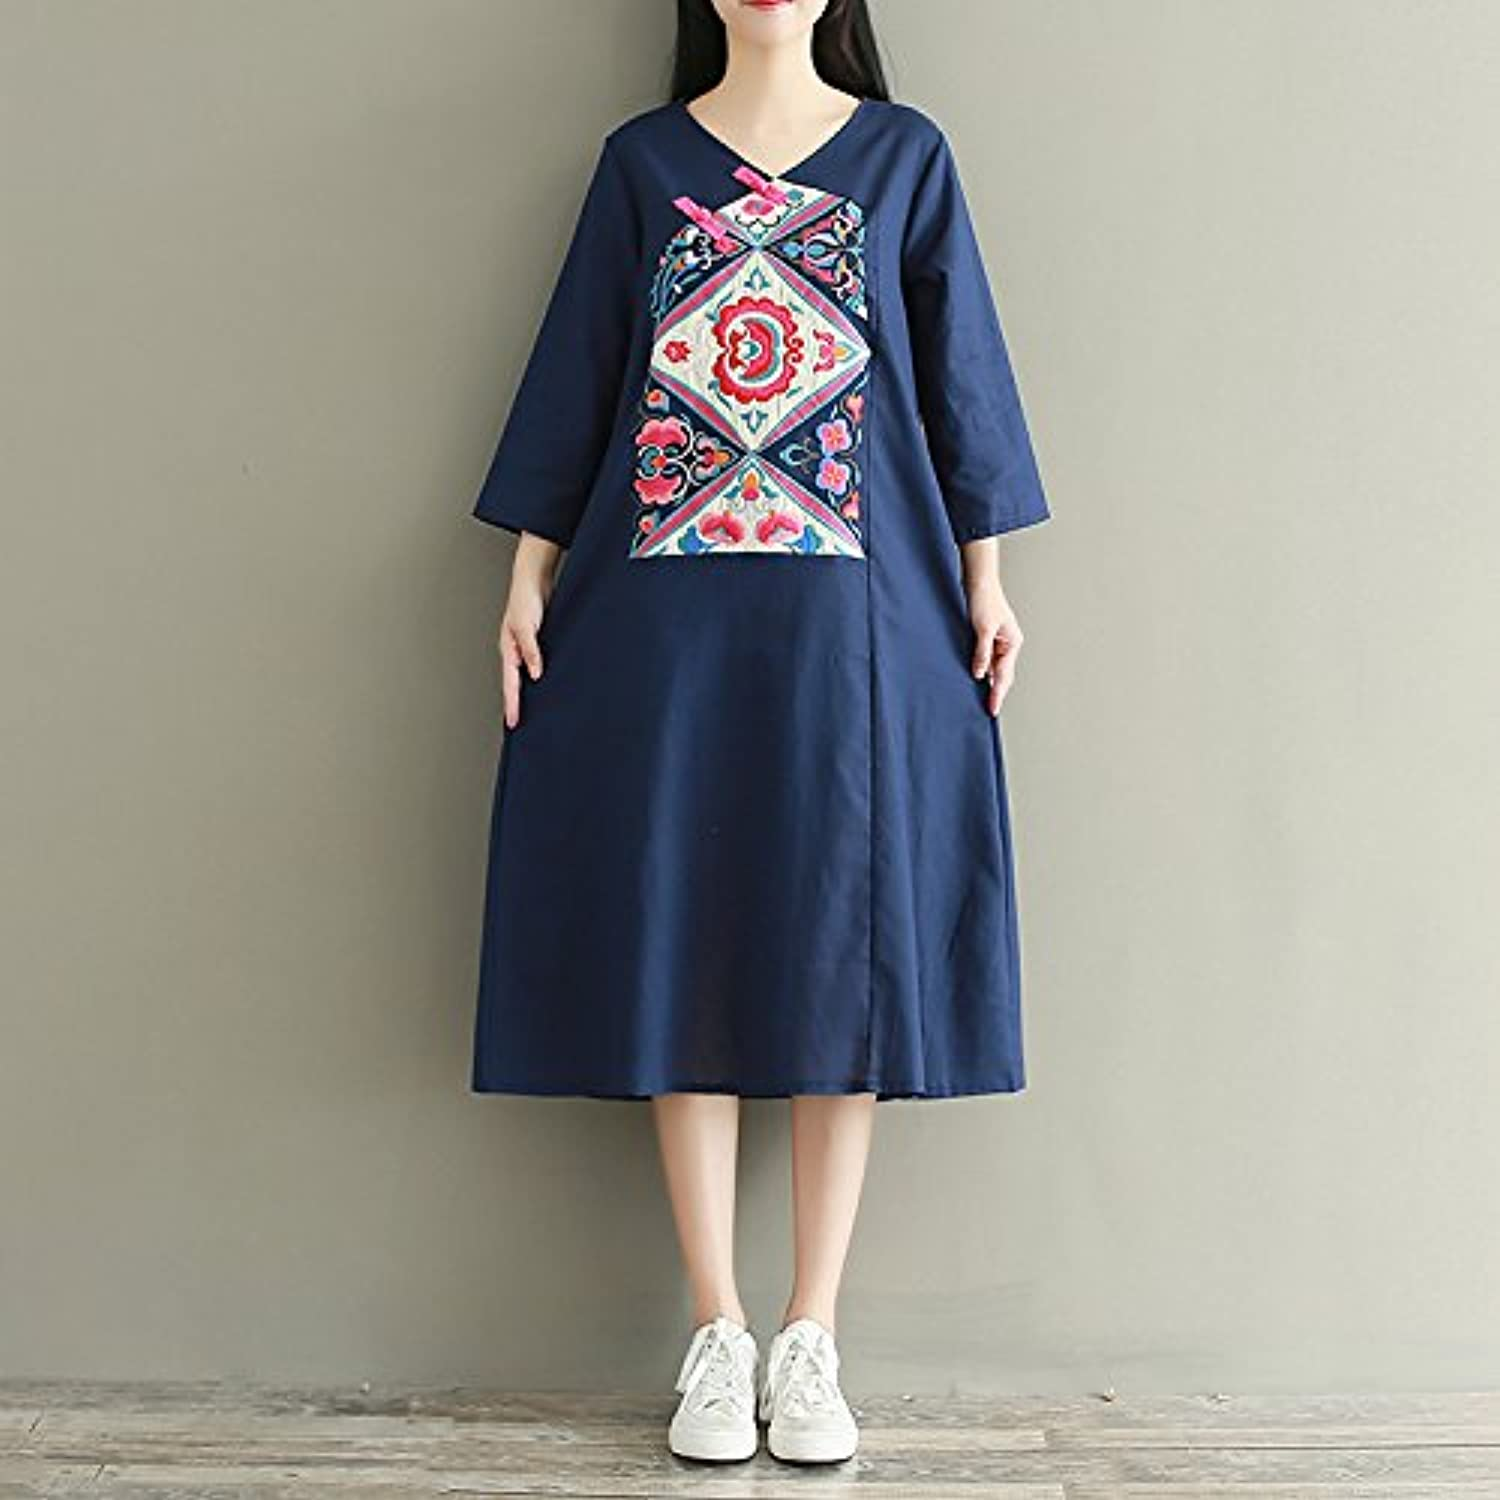 XIURONG Spring And Summer Female Embroidery Cotton Robe Long Sleeved Dress